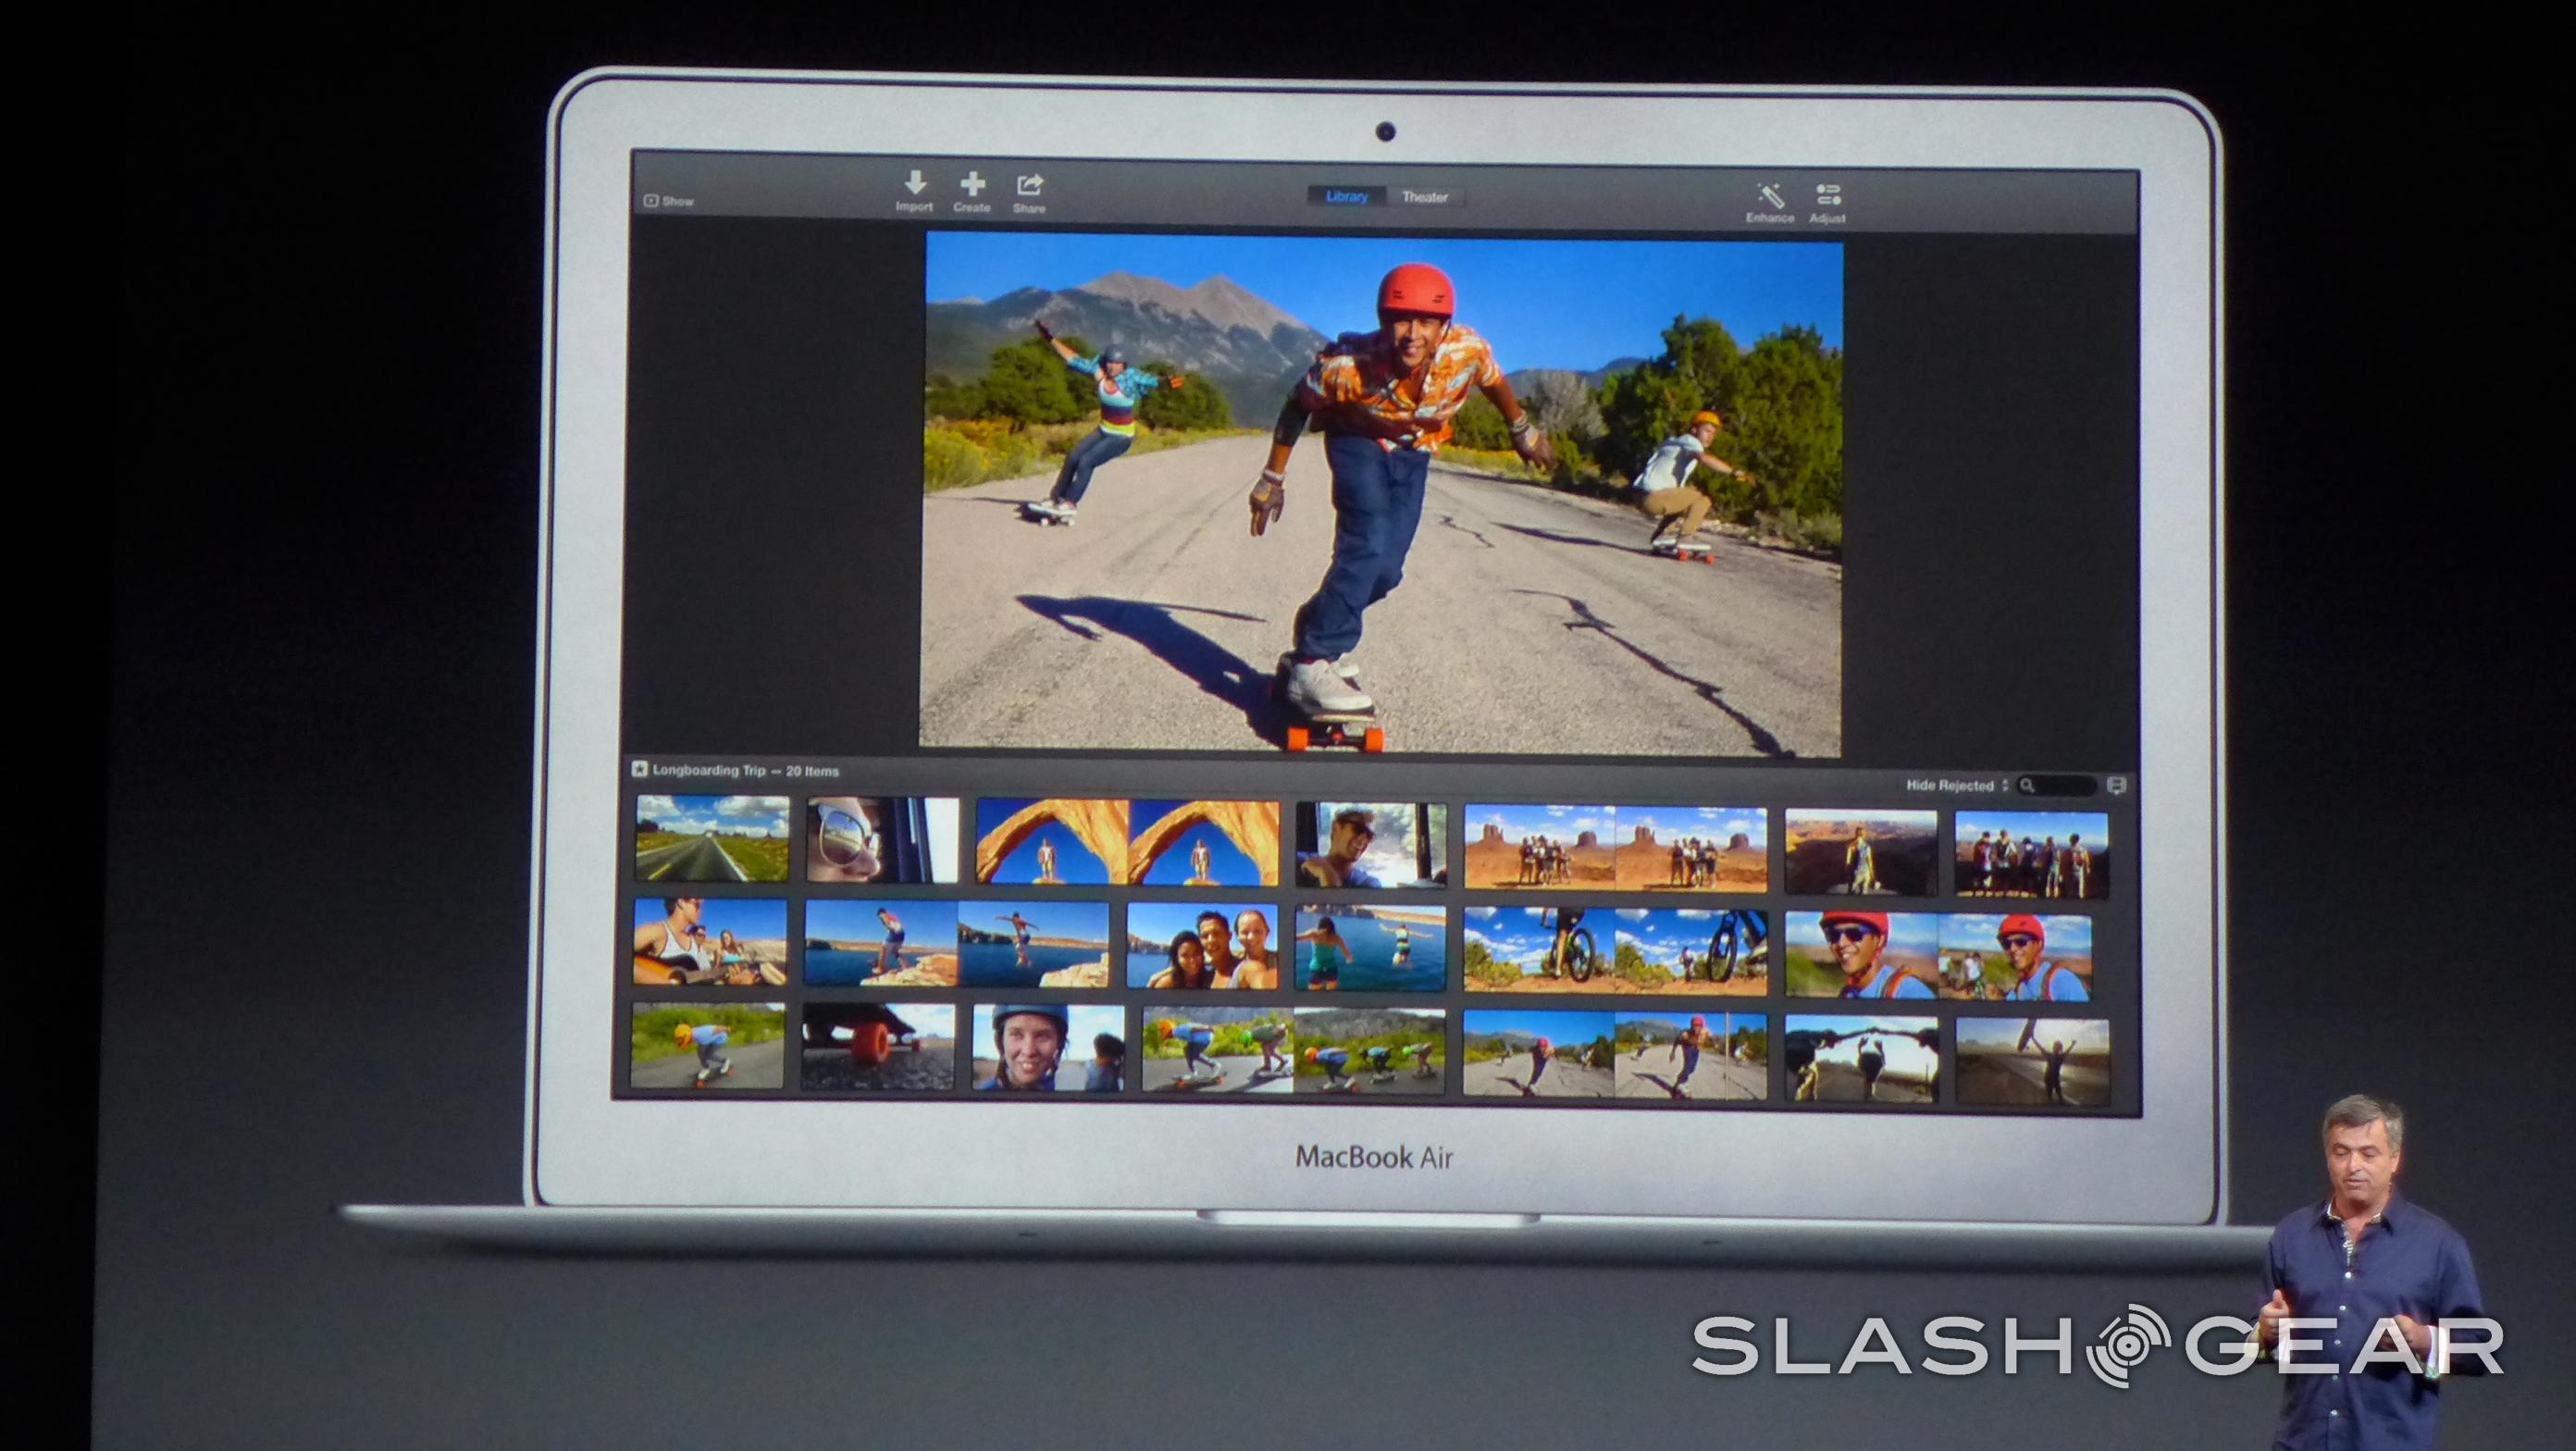 iLife update for iOS and OS X: iMovie, iPhoto, Garageband